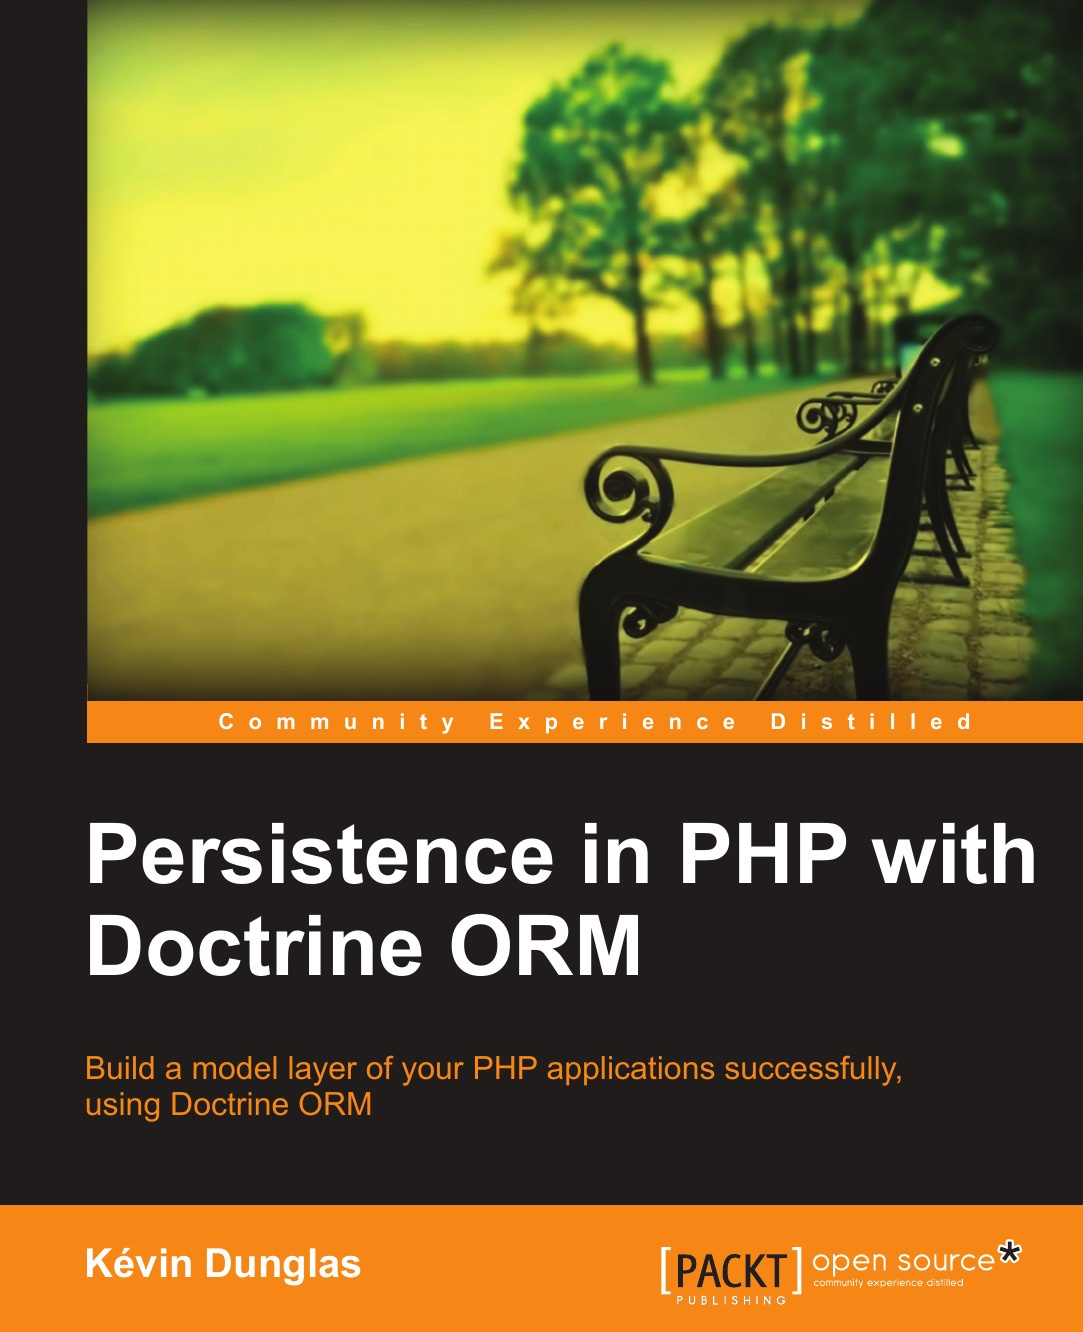 Kevin Dunglas Persistence in PHP with the Doctrine Orm